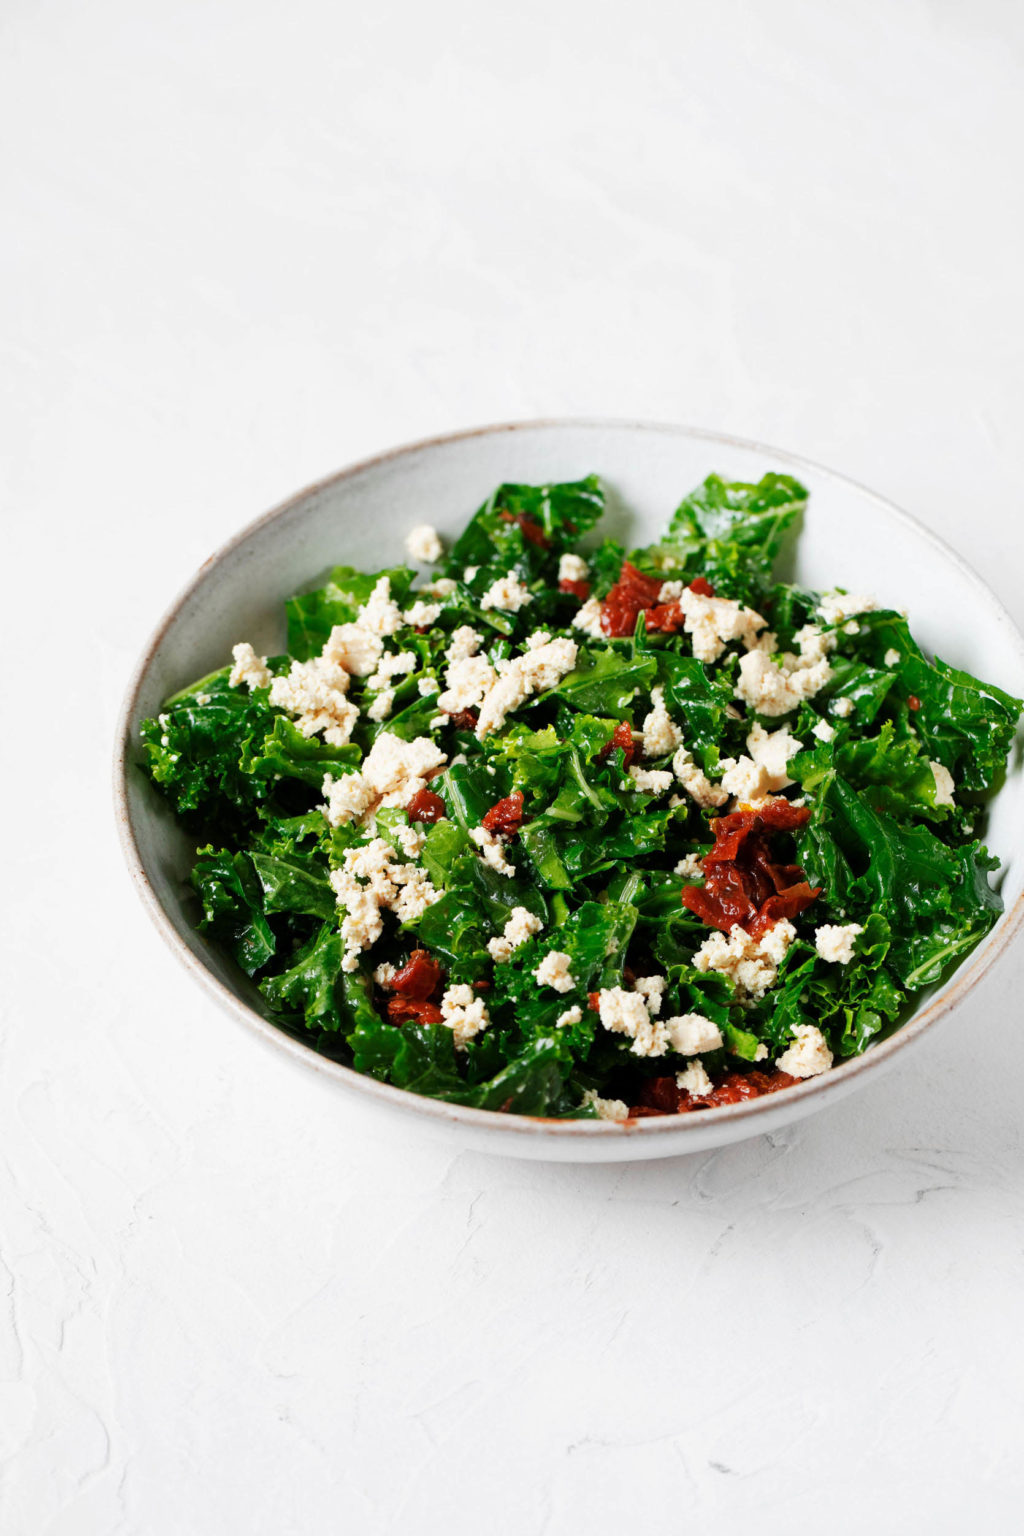 A white, ceramic bowl holds a tofu feta kale salad, which is prepared with small pieces of red sun-dried tomatoes.